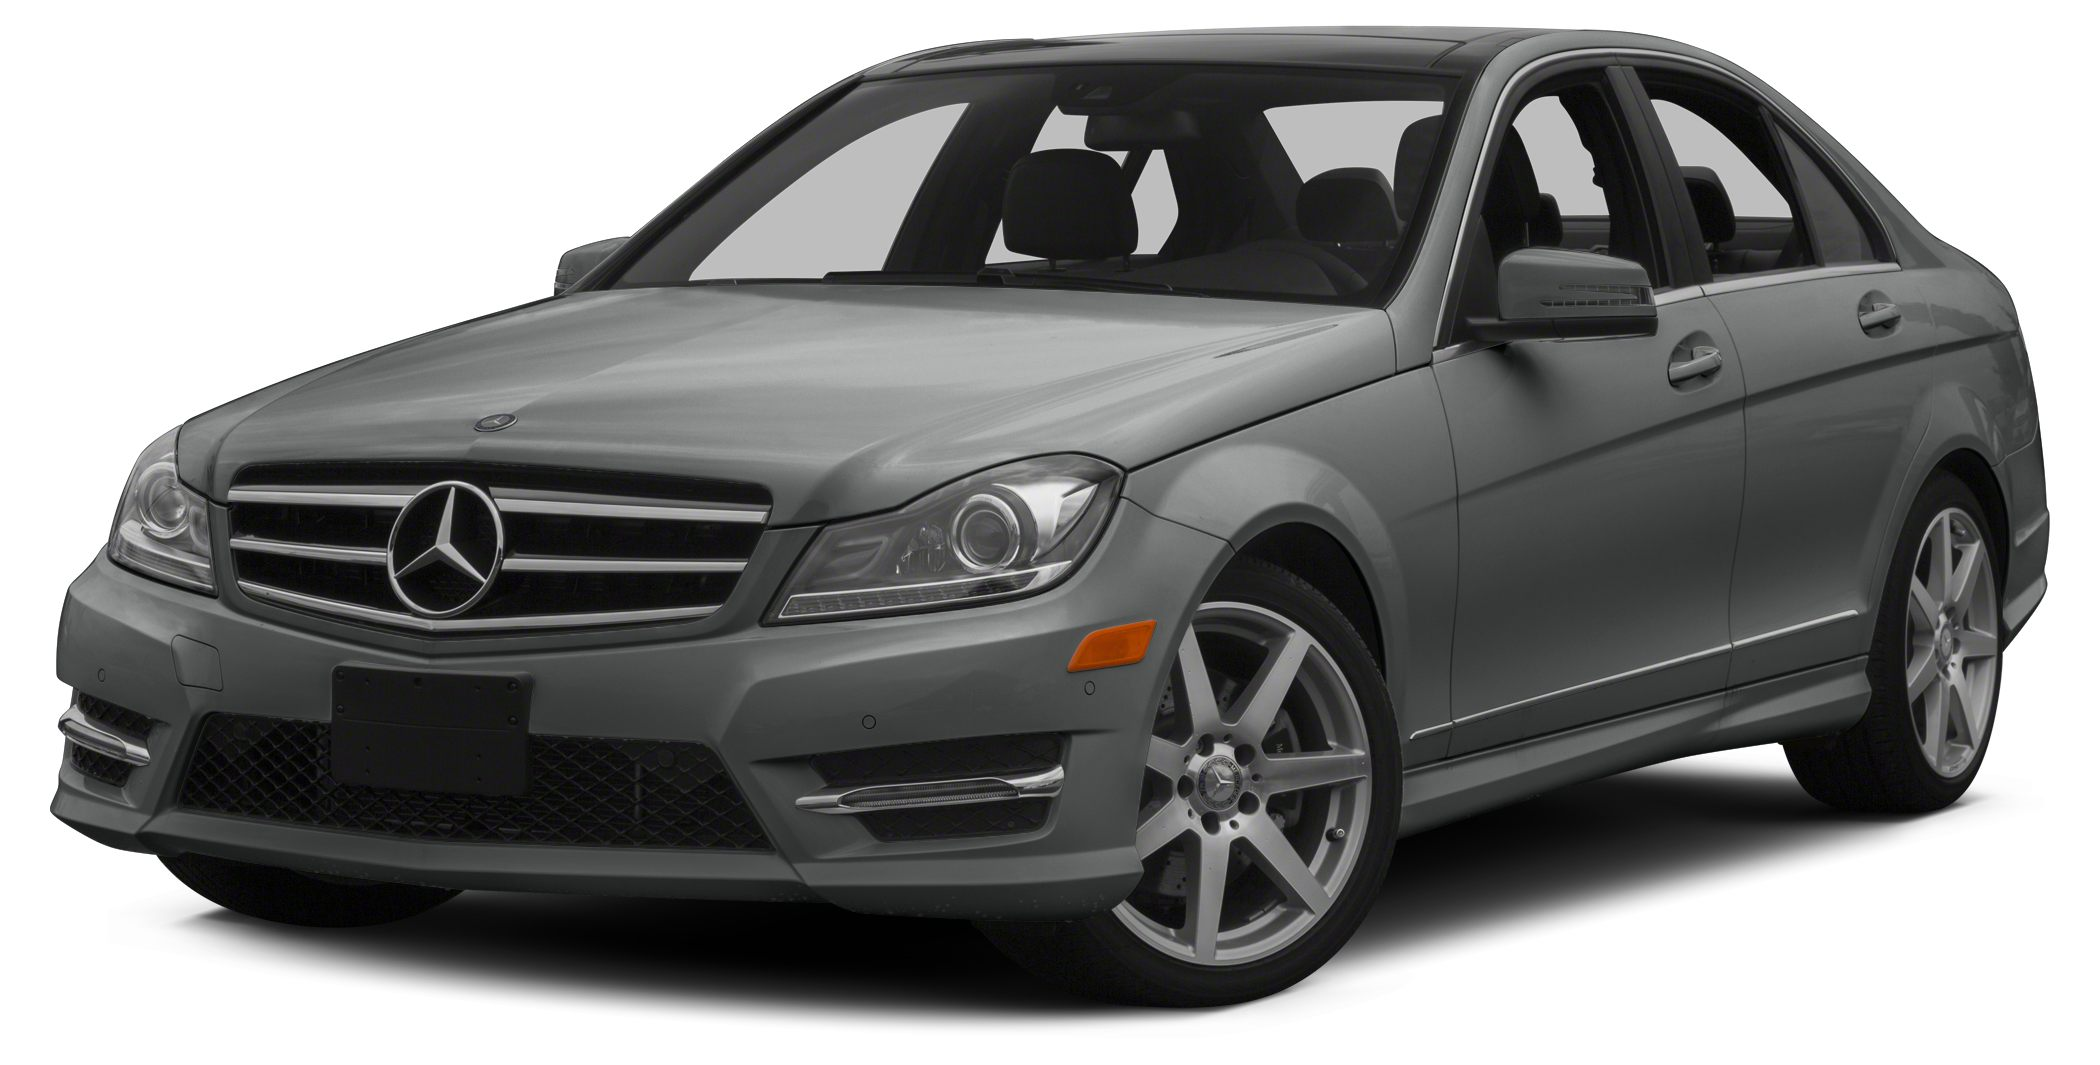 2014 MERCEDES C-Class C350 Sport We sold this incredible 2014 C350 sedan new This car was ordered